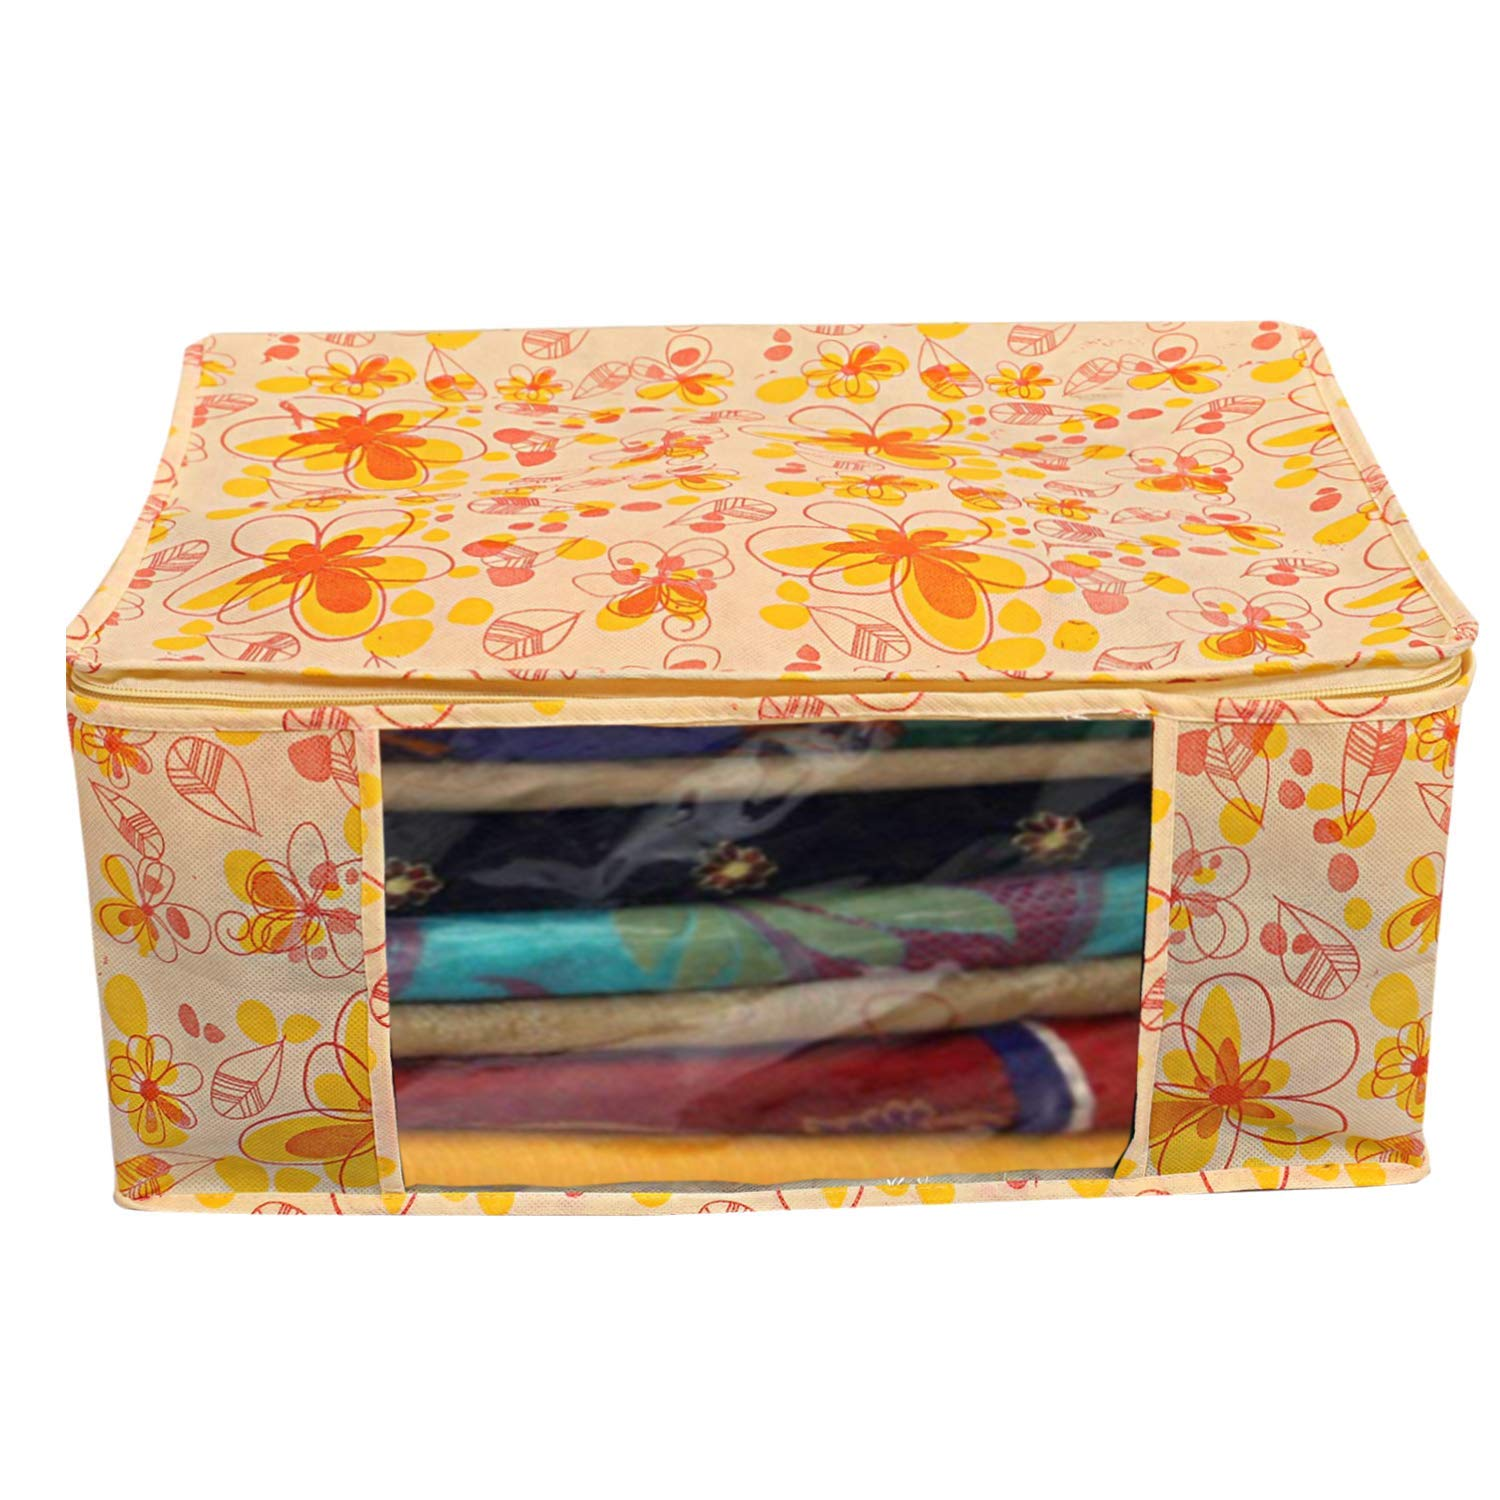 Kuber Industries Flower Printed Non Woven 2 Pieces Saree Cover And 2 Pieces Underbed Storage Bag, Cloth Organizer For Storage, Blanket Cover Combo Set (Ivory & Red) -CTKTC38631